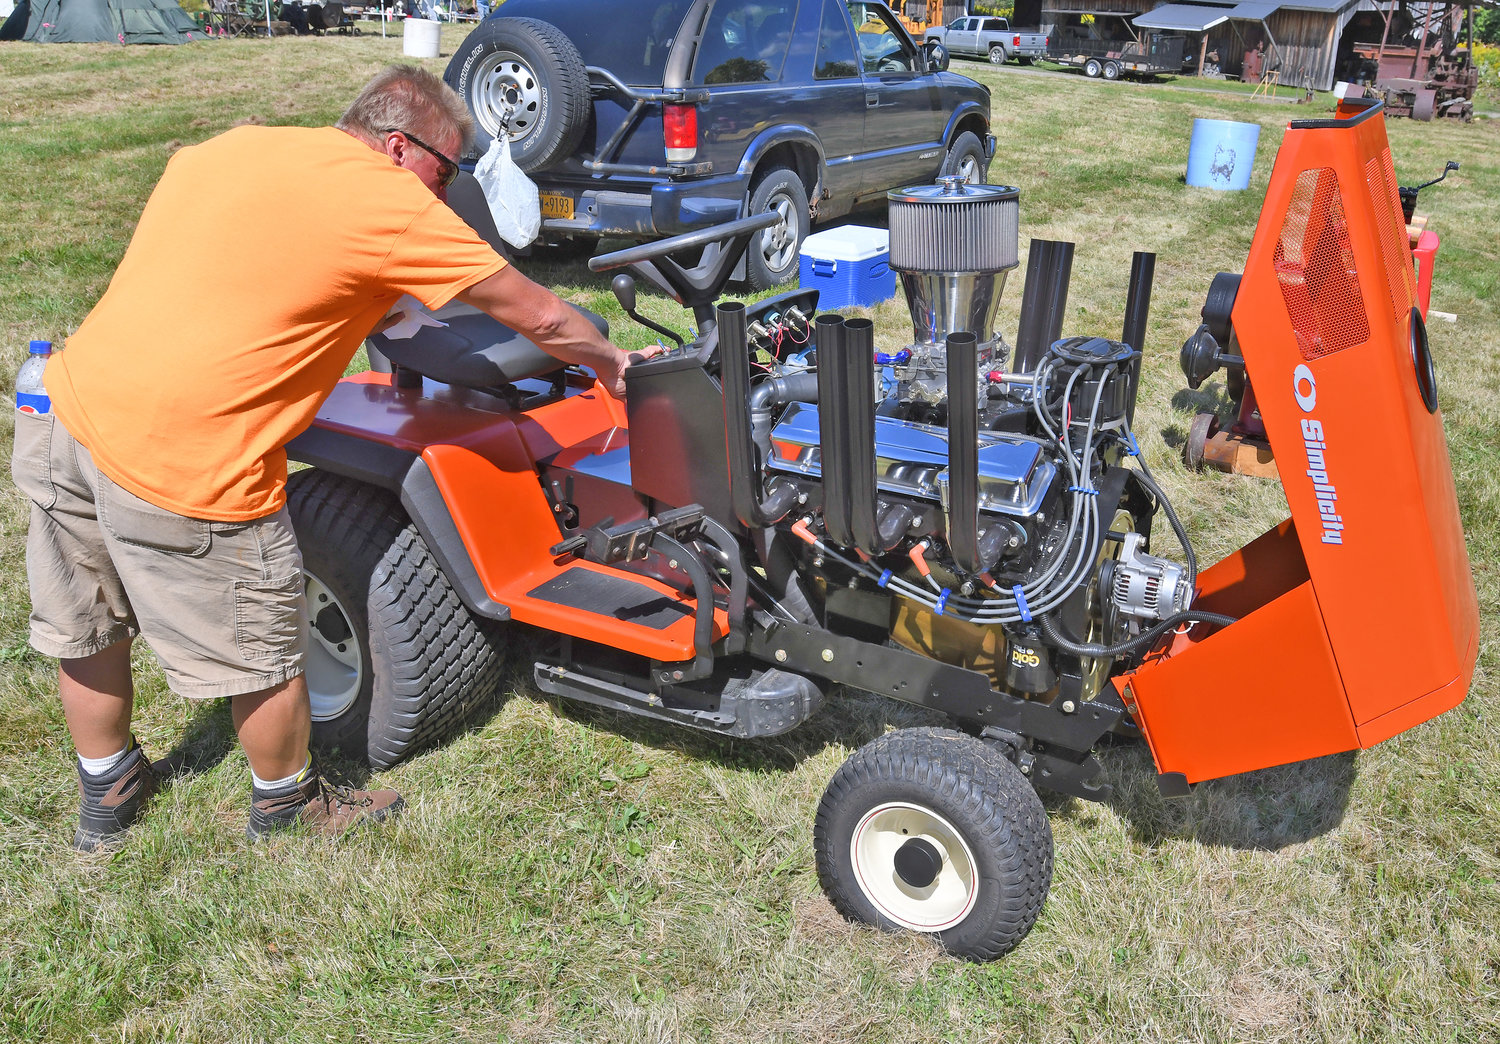 STARTING HIS ENGINE — Carl Fleming of Gouverneur  starts his Simplicity Sunstar lawnmower equipped with a 267 Chevy small block motor on Friday afternoon during the first day of the 44th annual Old Time Gas Engines, Tractors and Truck Show at the Flywheels and Pulleys Club in Constableville. The event continues today into the evening, and Sunday from 8 a.m.-6 p.m.